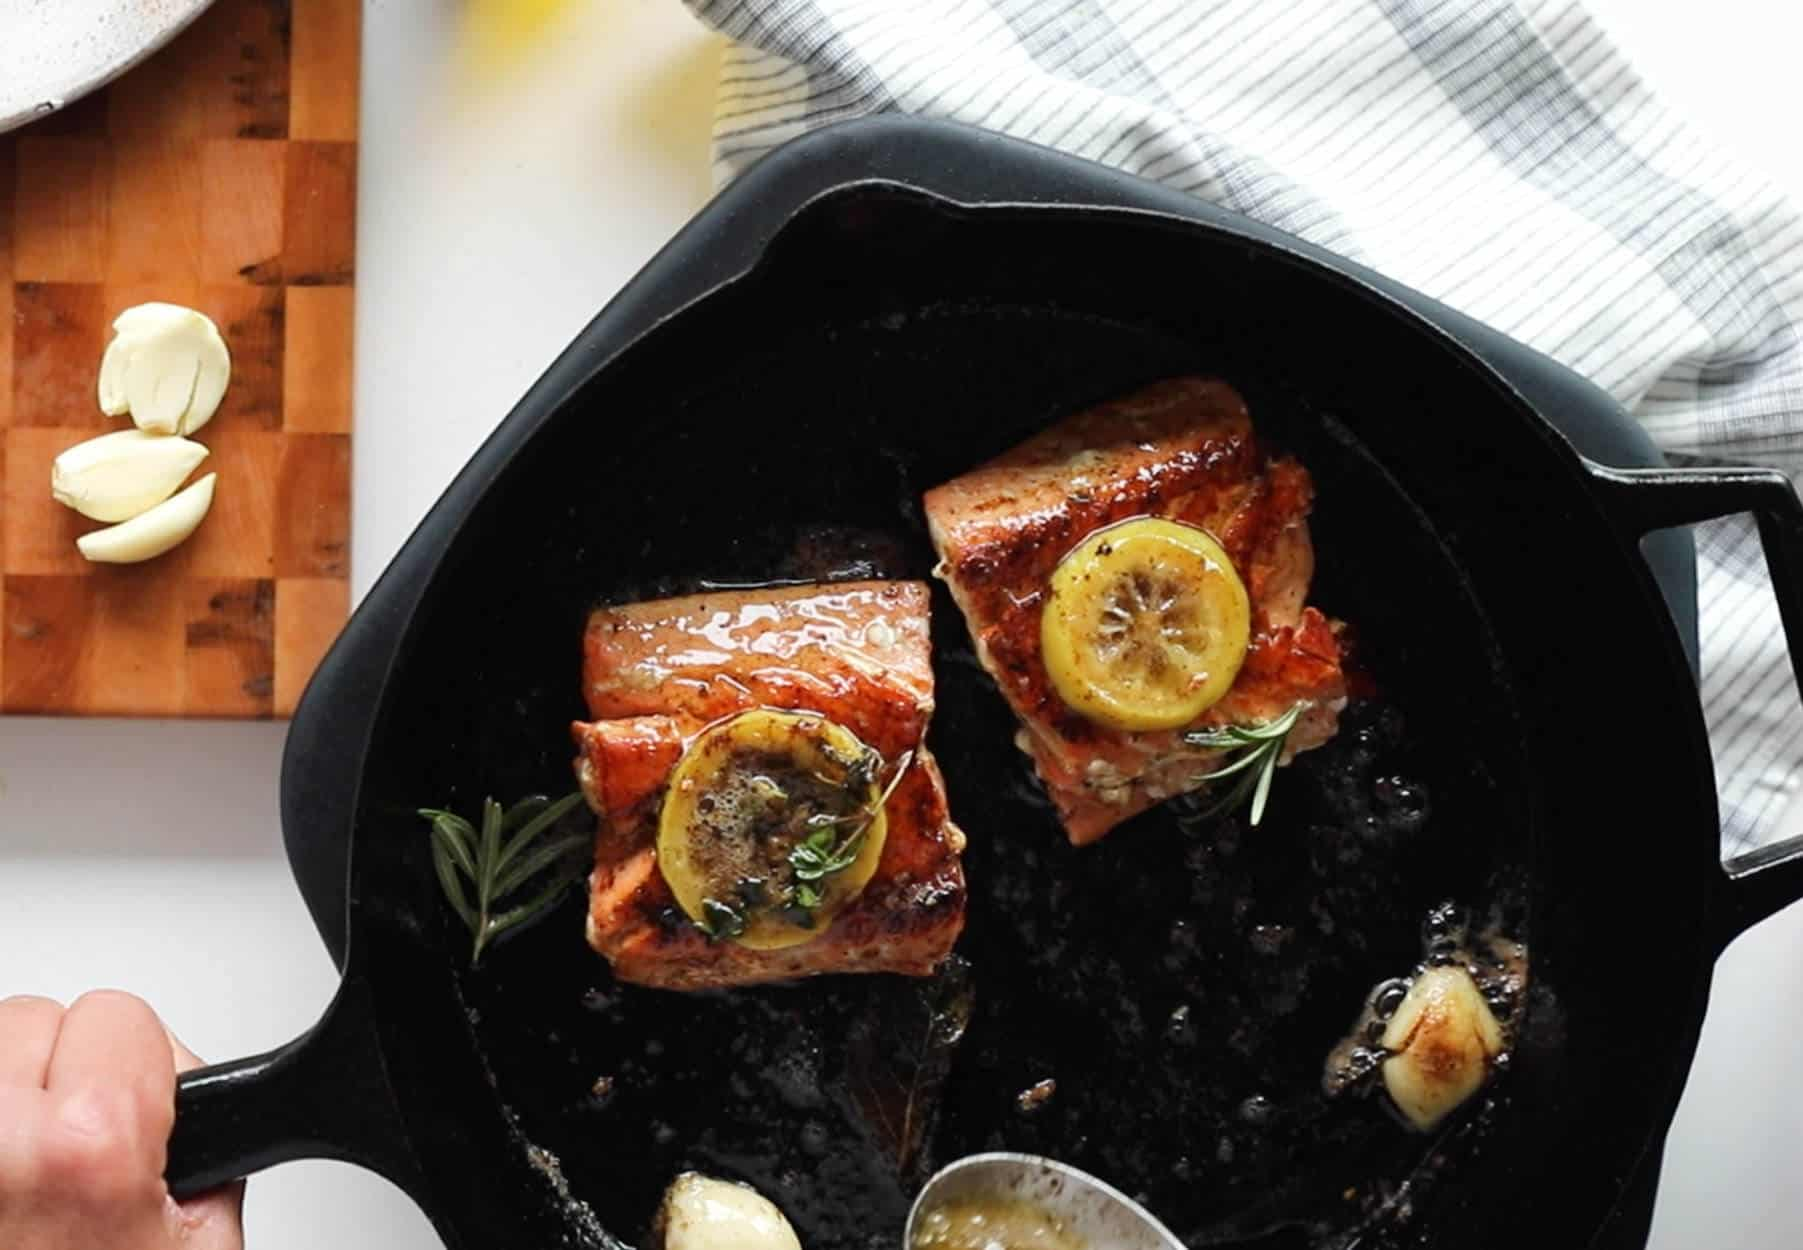 Sauteing and basting Brown Butter Herb Crispy Skin Salmon in cast iron pan with lemon slices and brown butter, rosemary, garlic, thyme and sage.